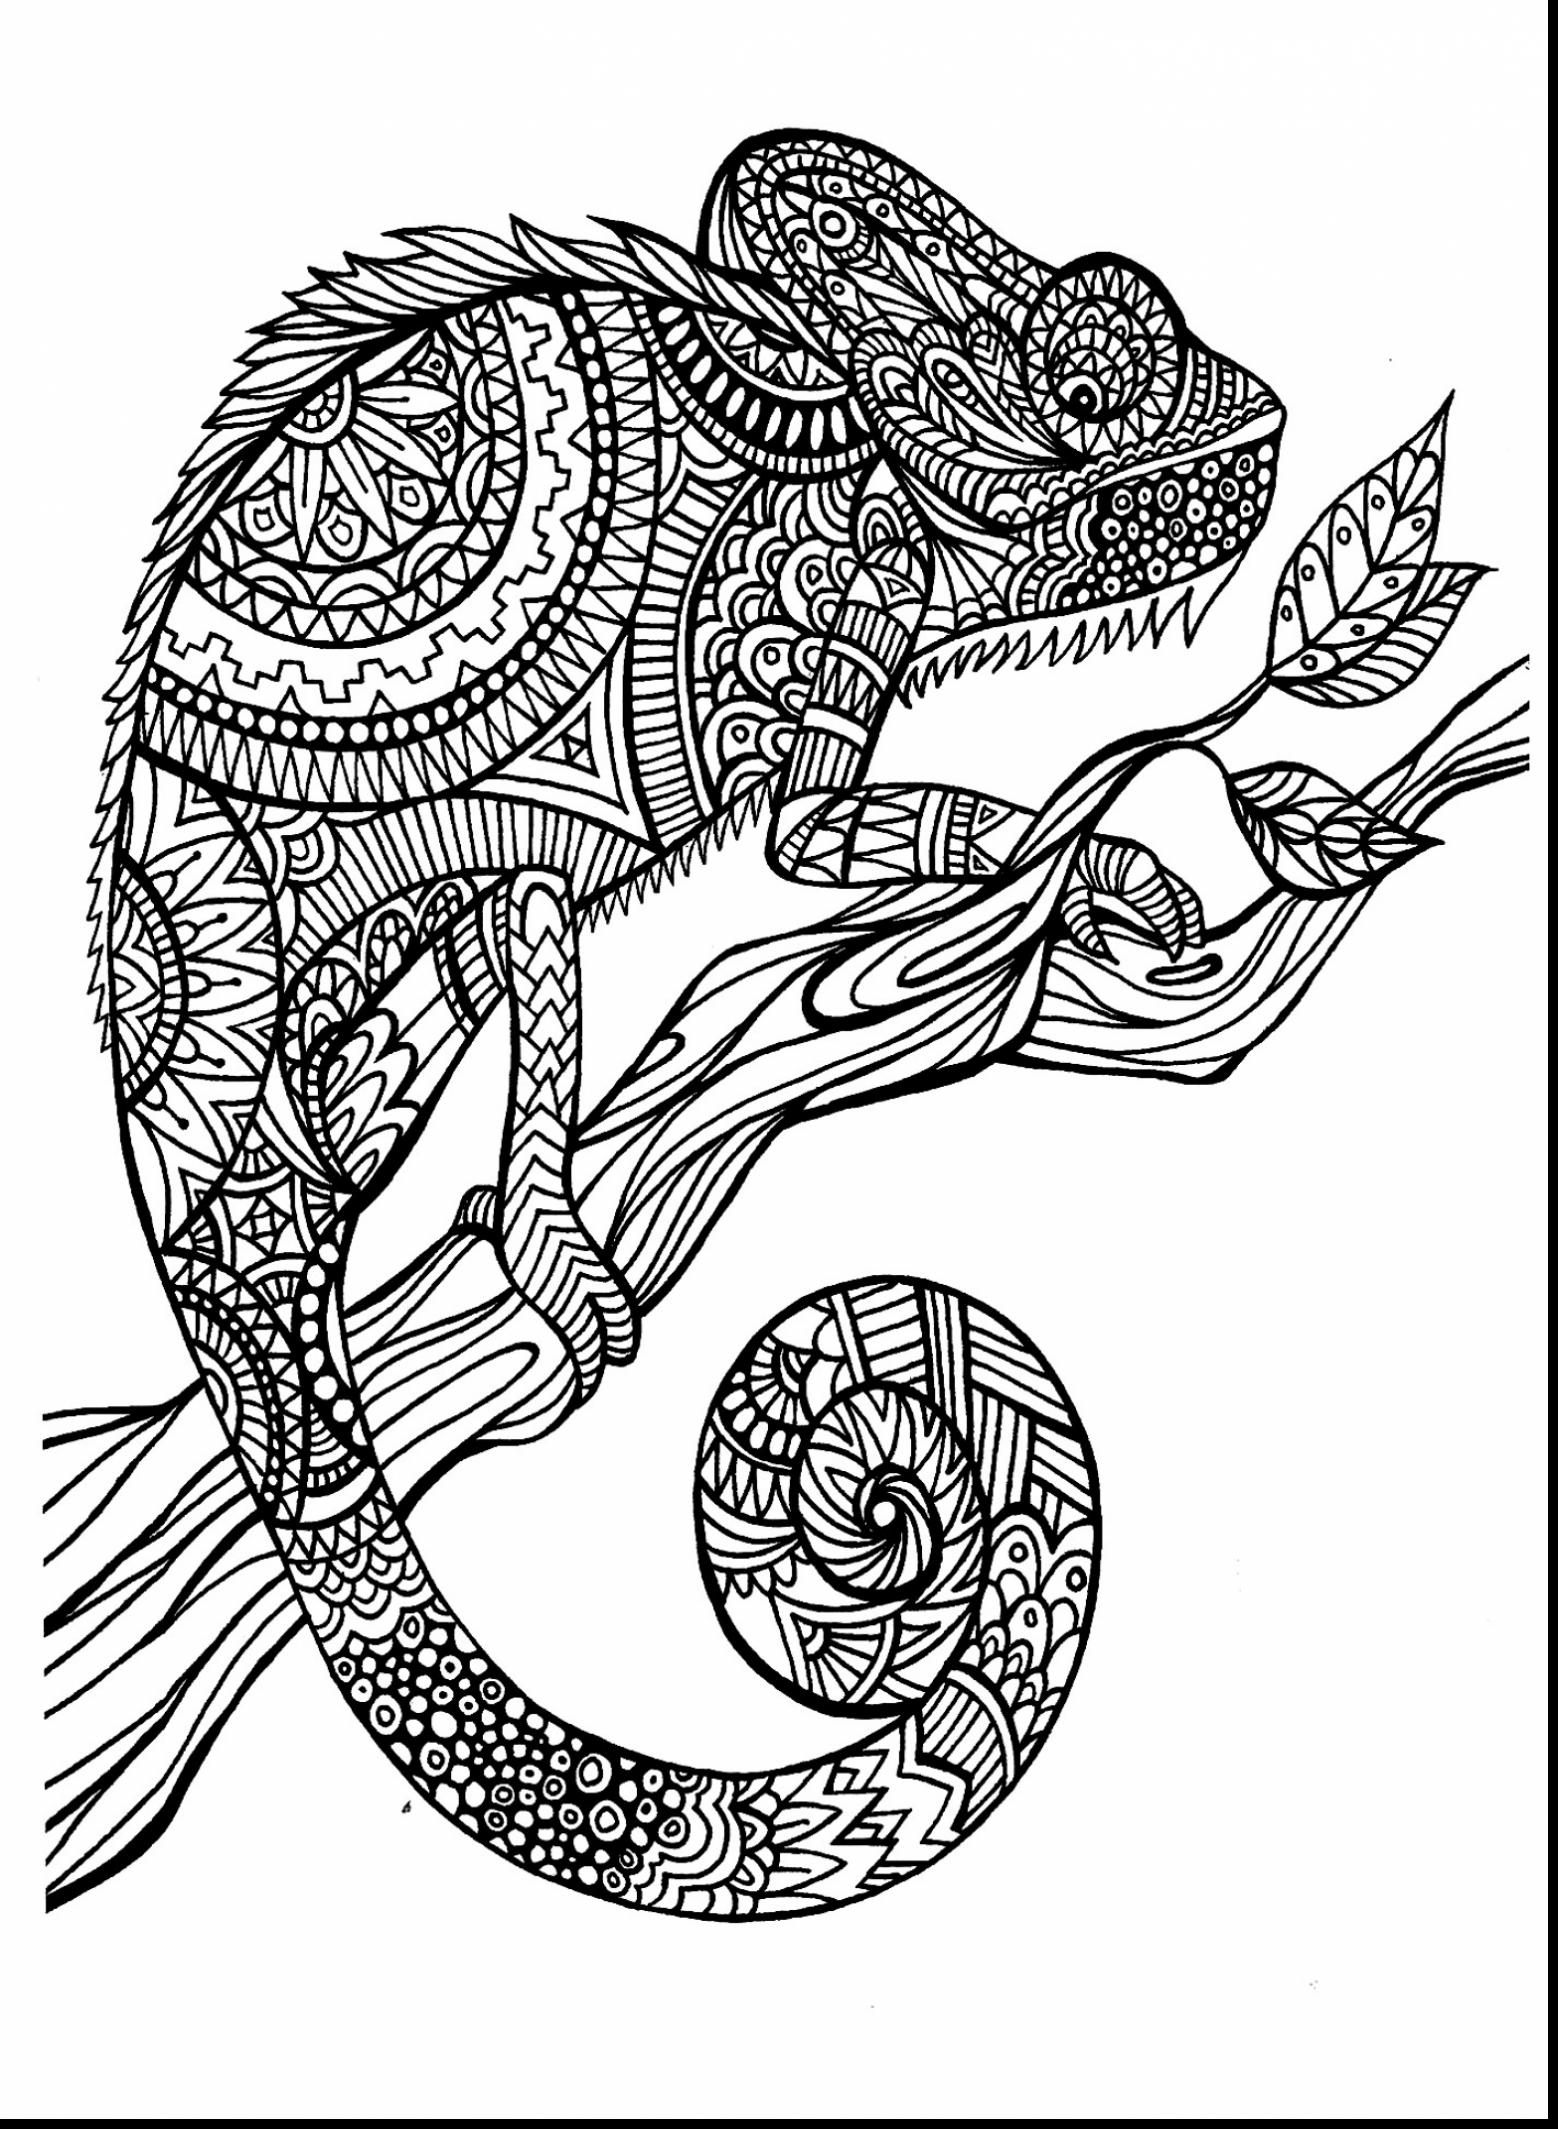 Animal Coloring Pages For Older Children at GetDrawings.com ...